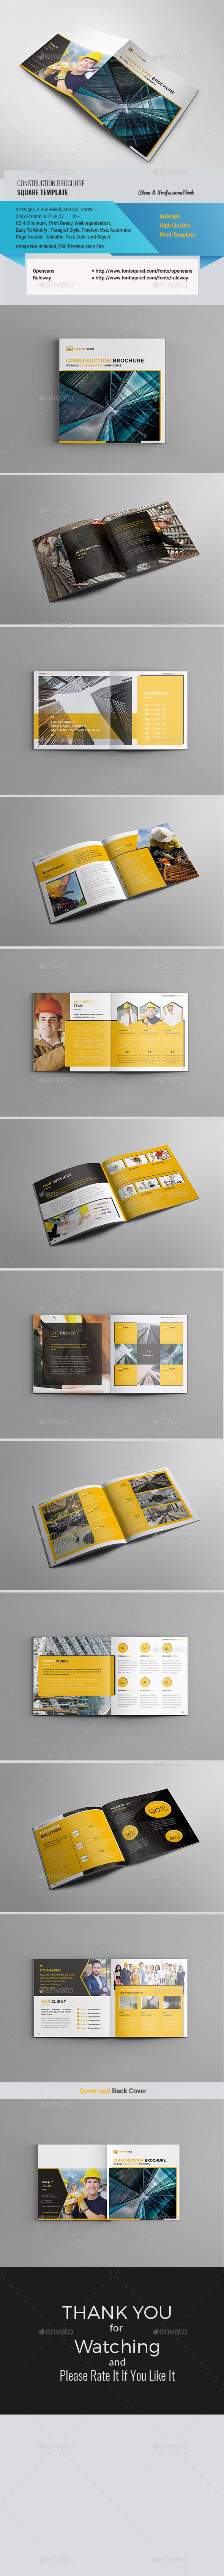 GraphicRiver Square Construction Brochure 21196105